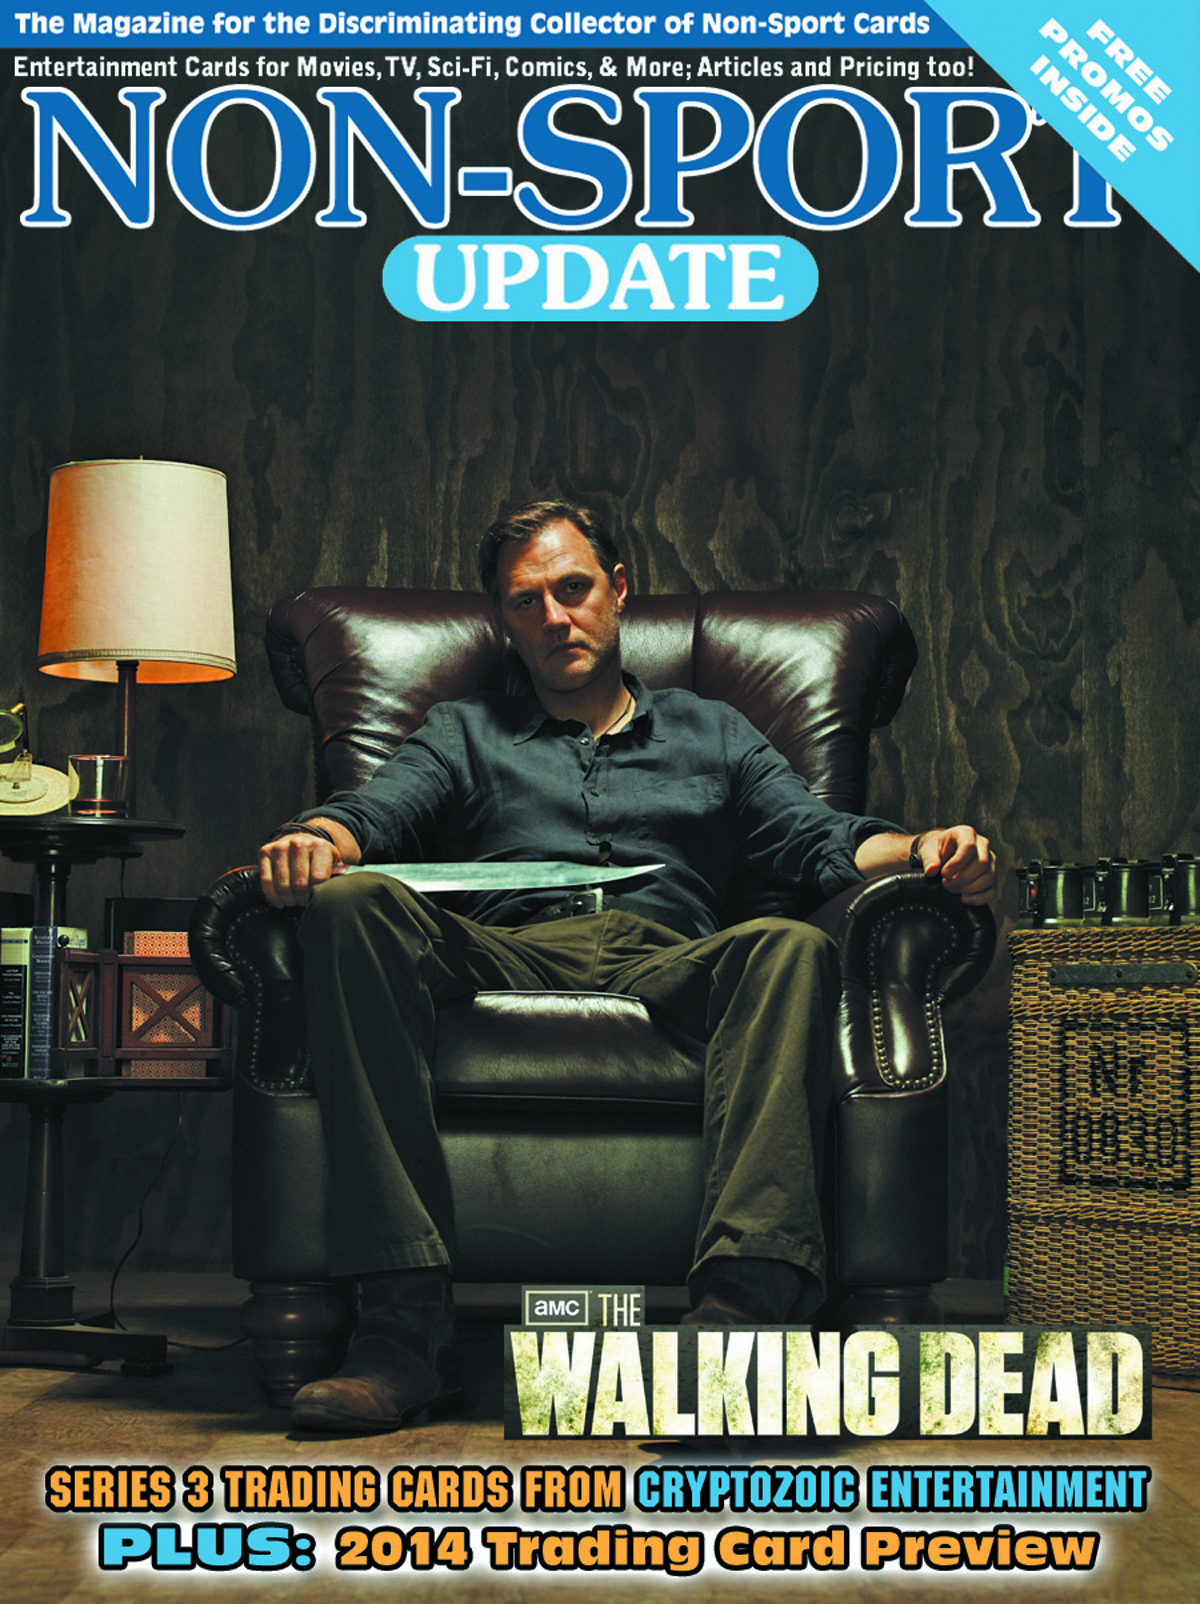 NON SPORT UPDATE VOL 25 #1 WALKING DEAD CVR